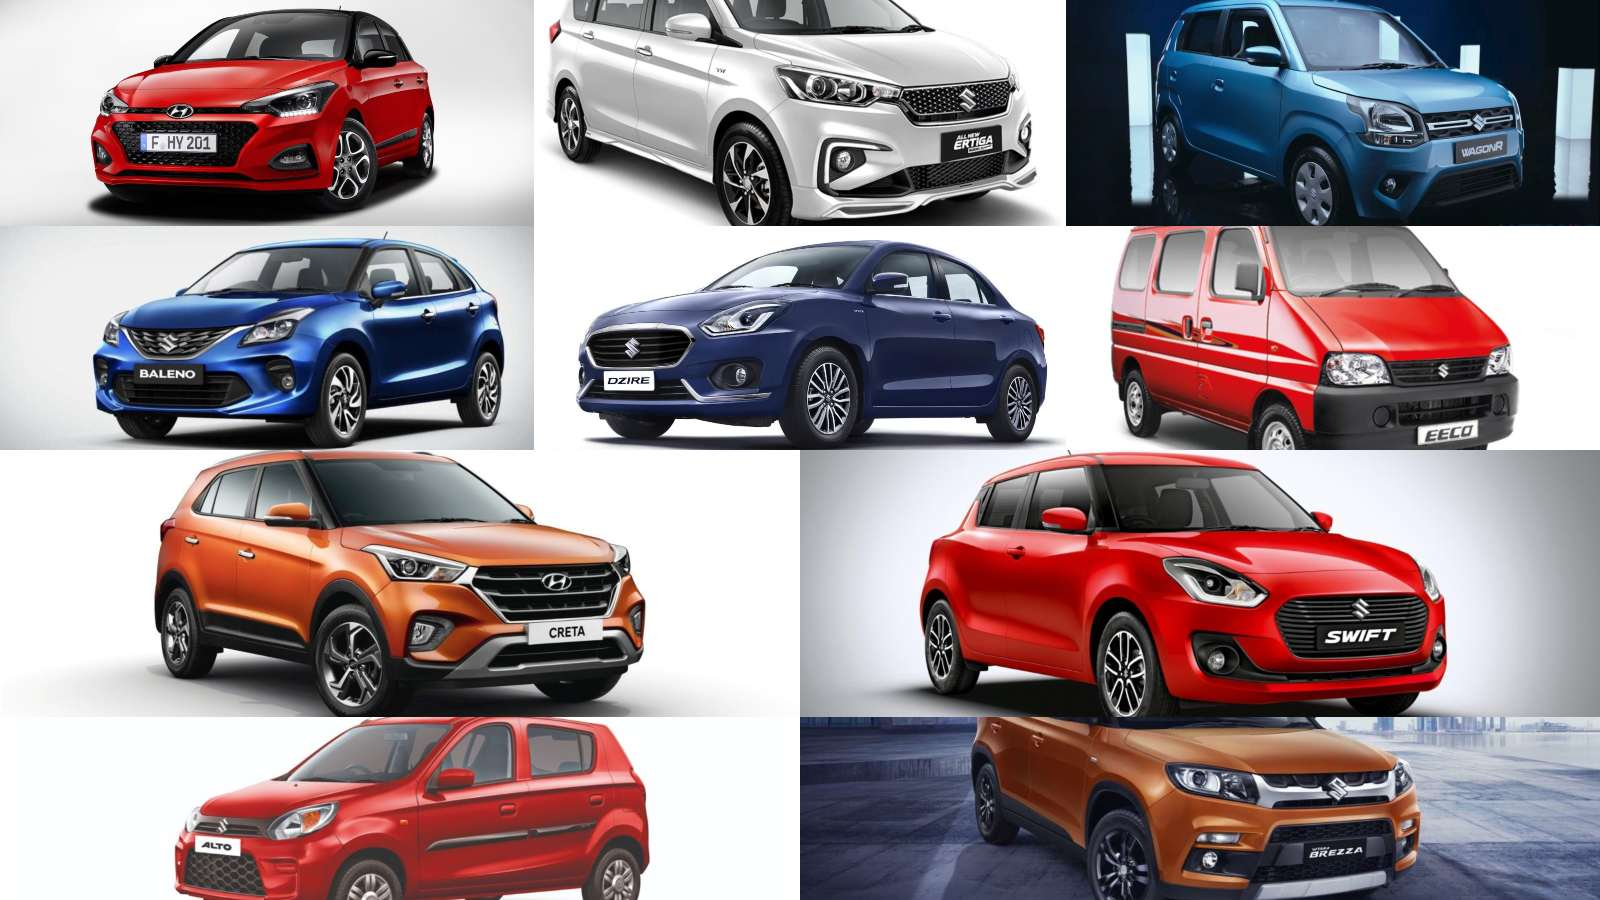 Top 25 selling cars in india may 2019